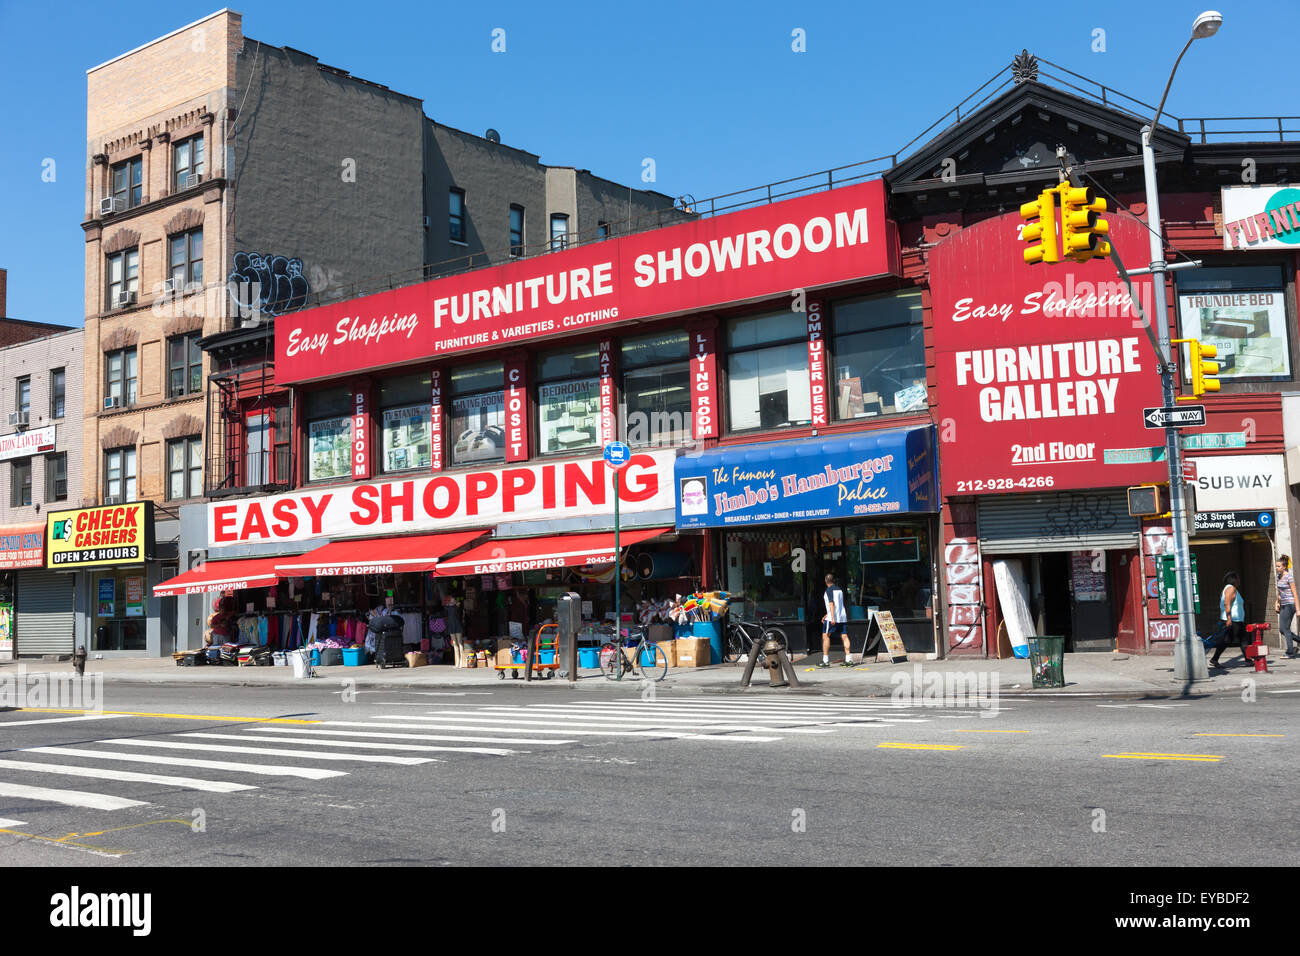 Easy Shopping furniture store in the Washington Heights section of New York City. - Stock Image